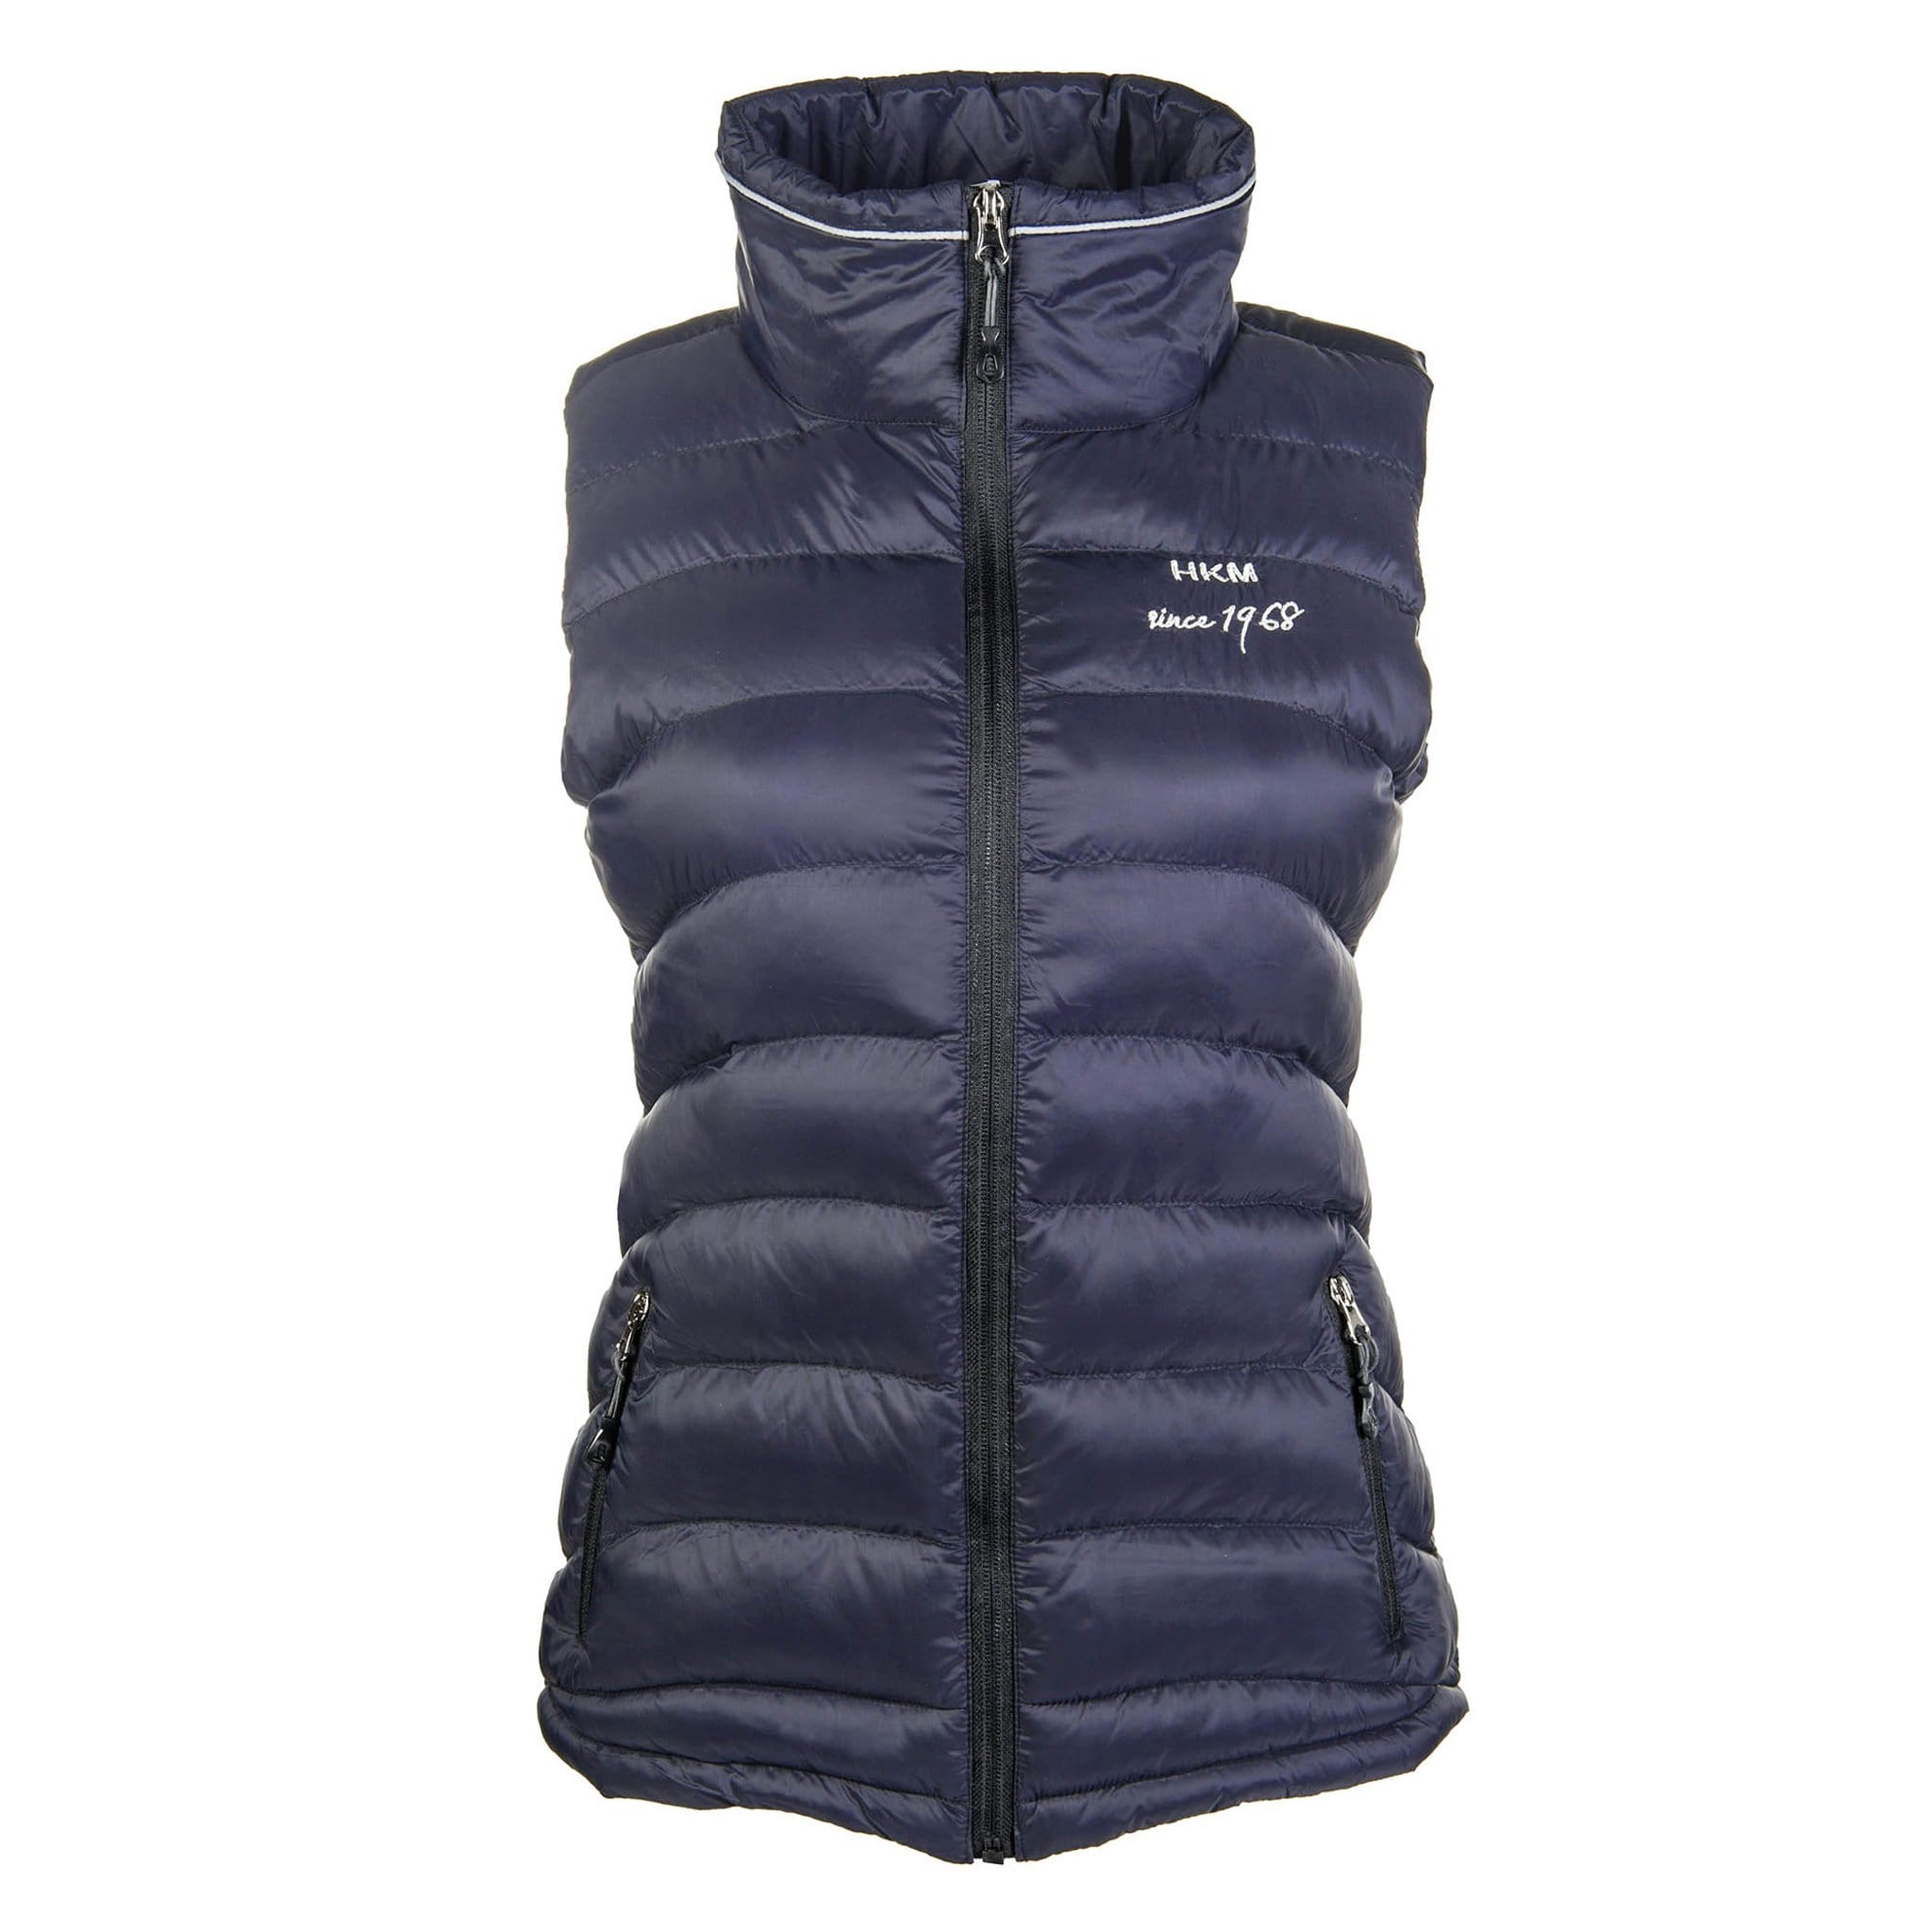 HKM Extra Light Riding Waistcoat 8180 Navy Front